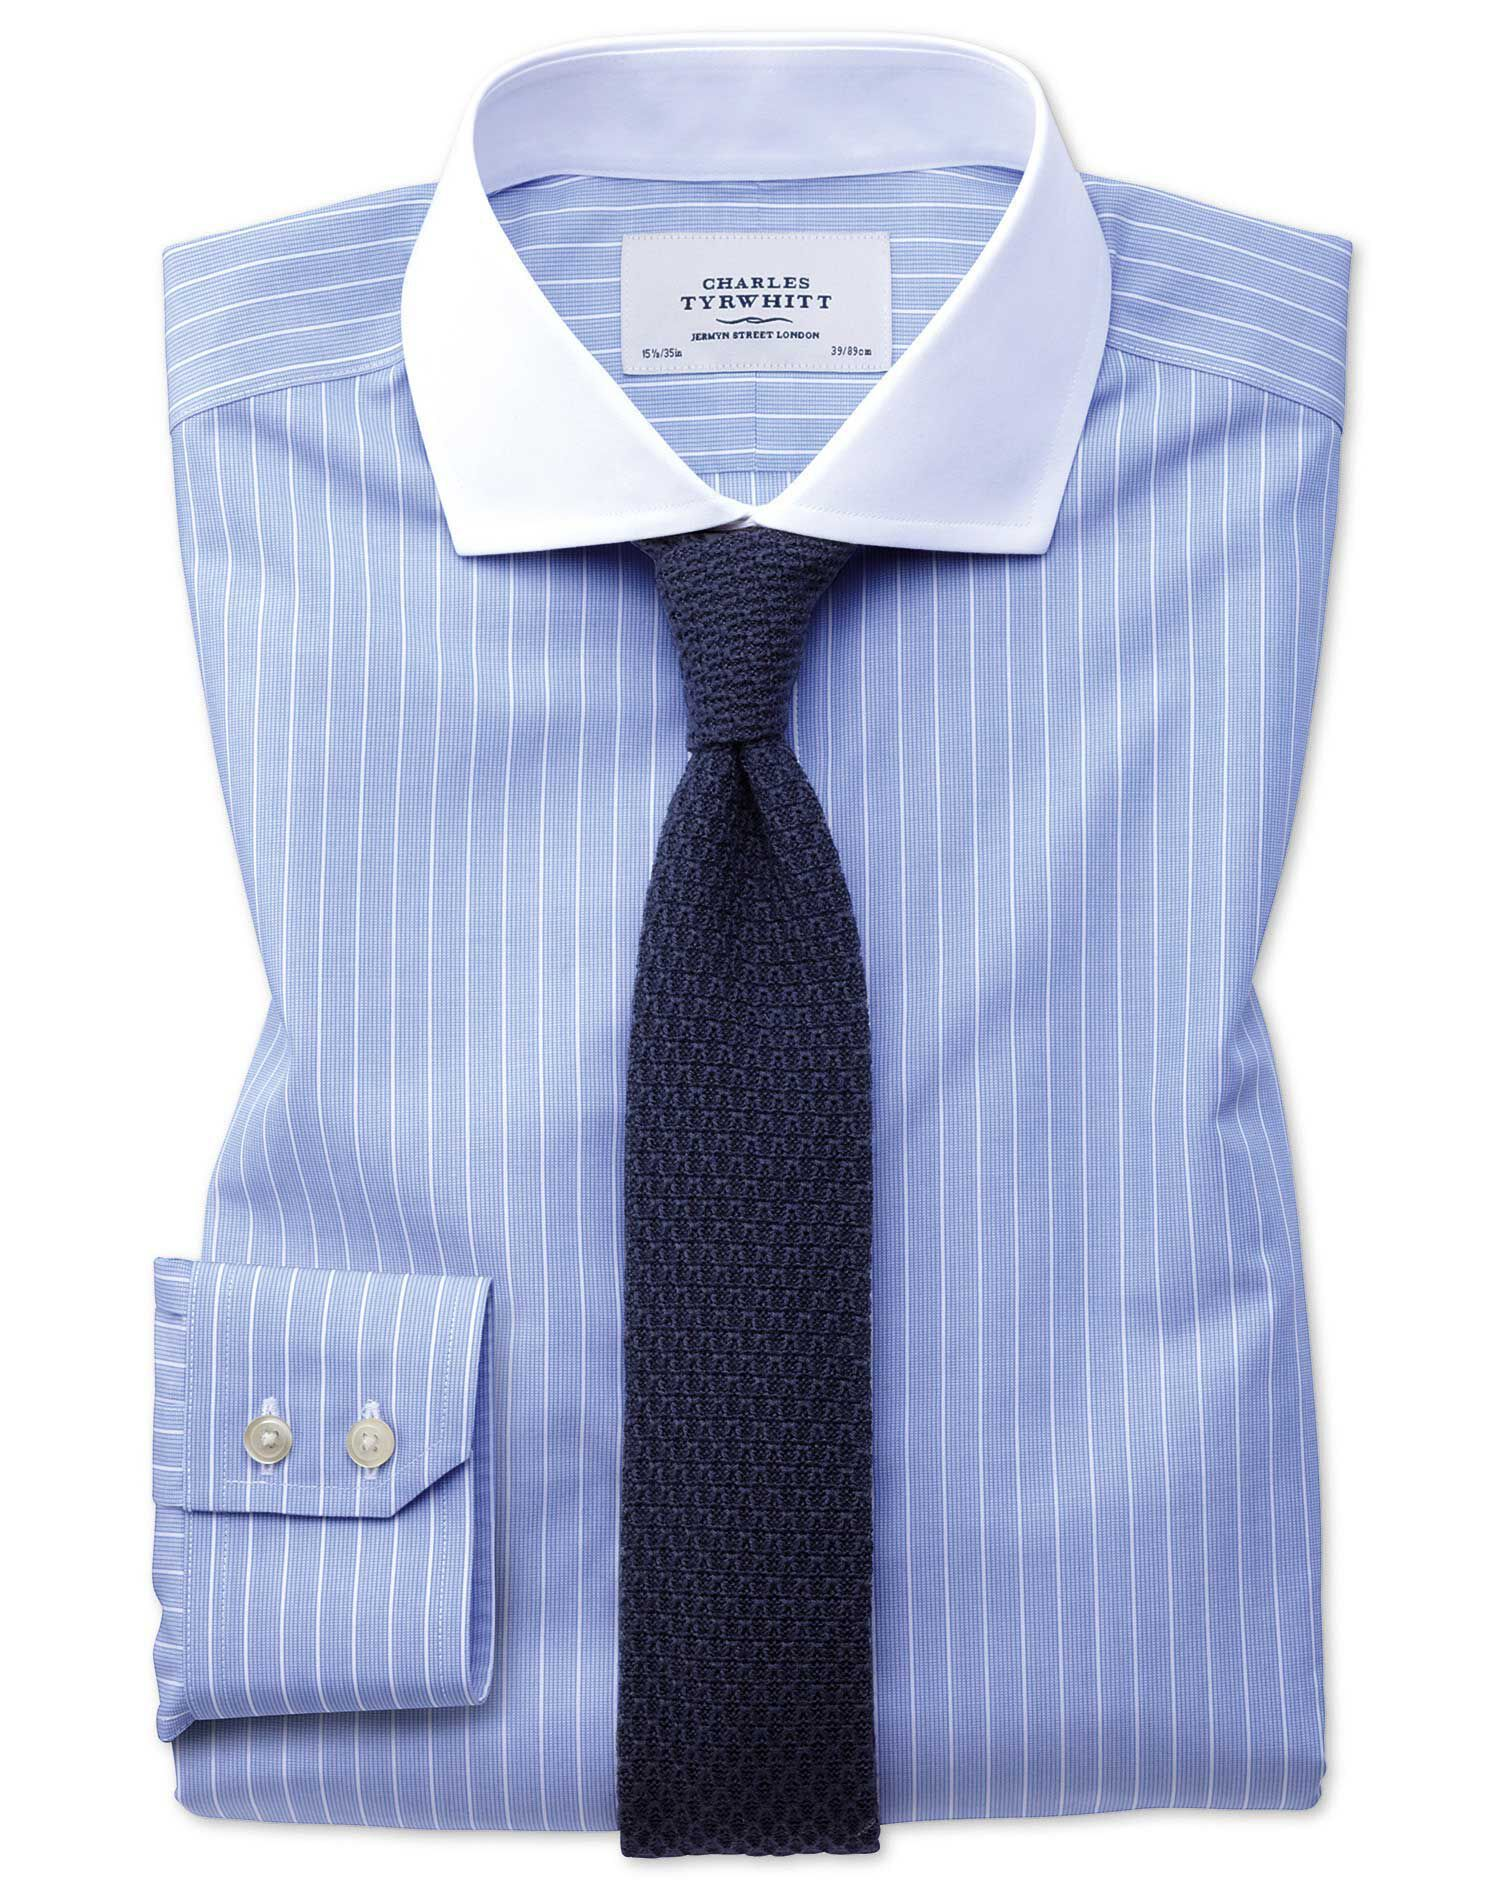 Extra Slim Fit Cutaway Non-Iron Winchester Blue and White Cotton Formal Shirt Double Cuff Size 16.5/